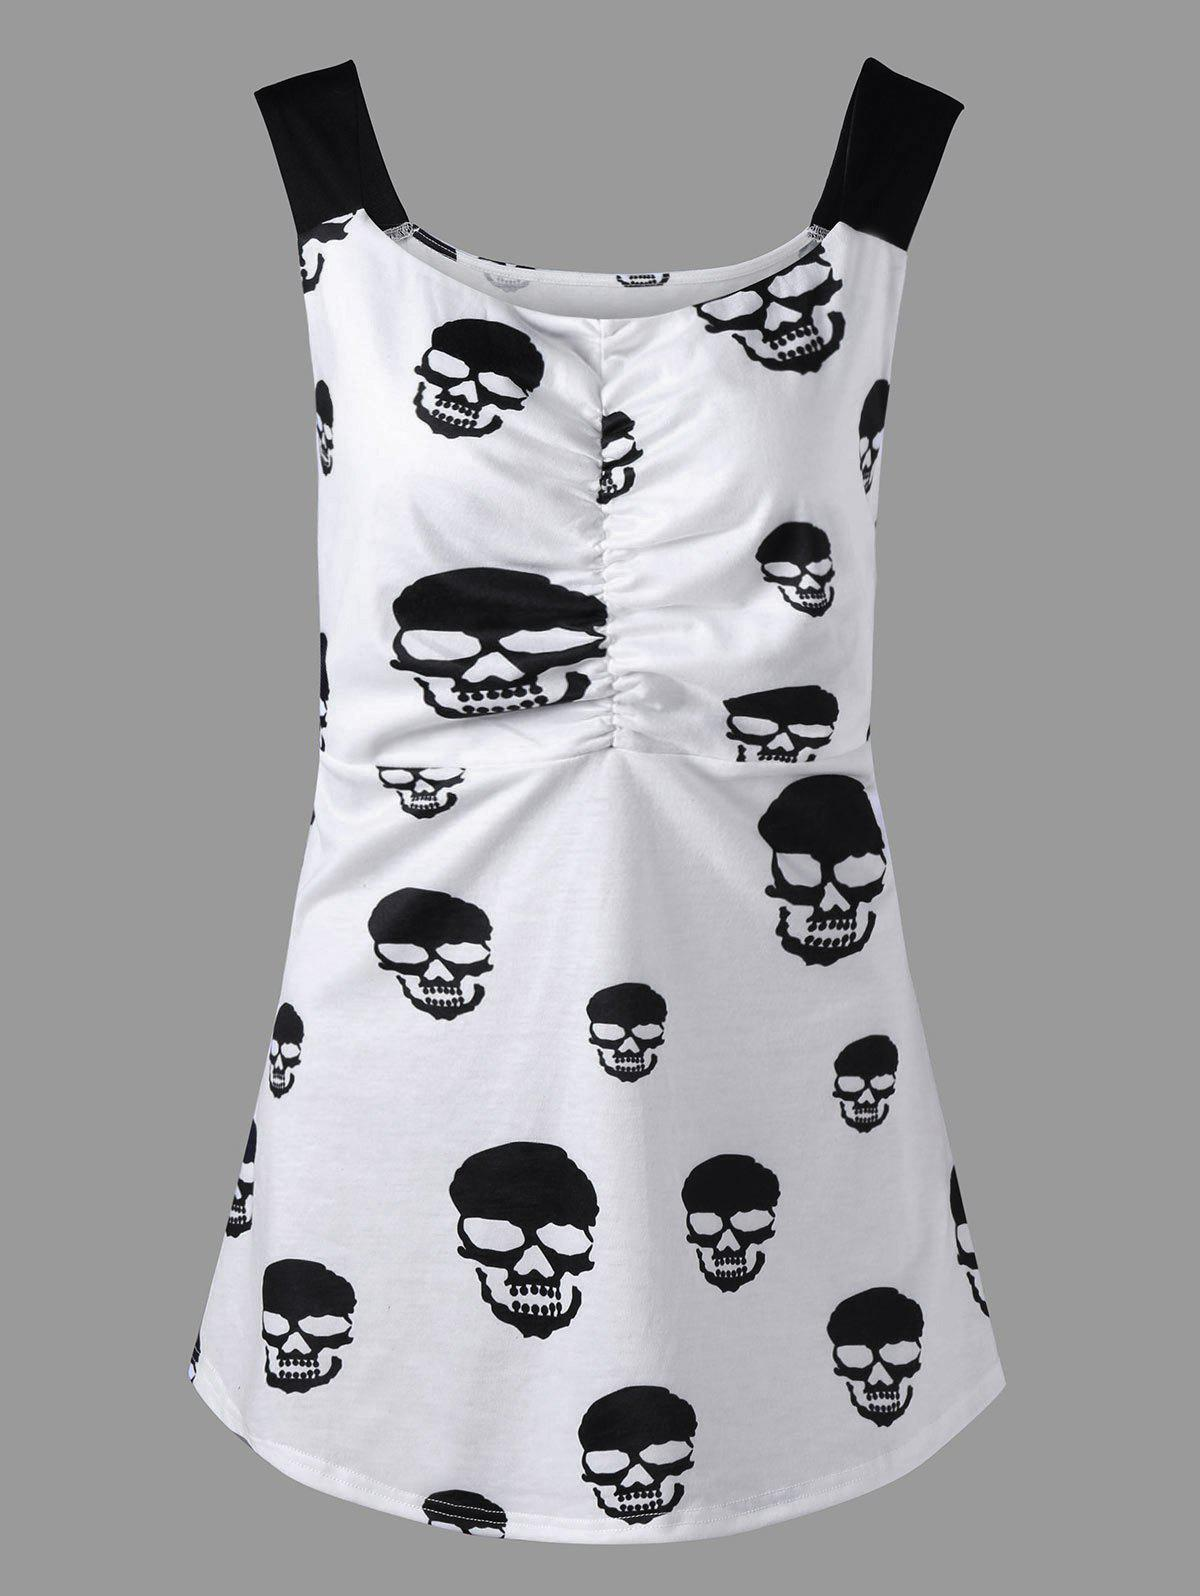 Skull Print Plus Size Ruched Tank Top skull print plus size ruched tank top